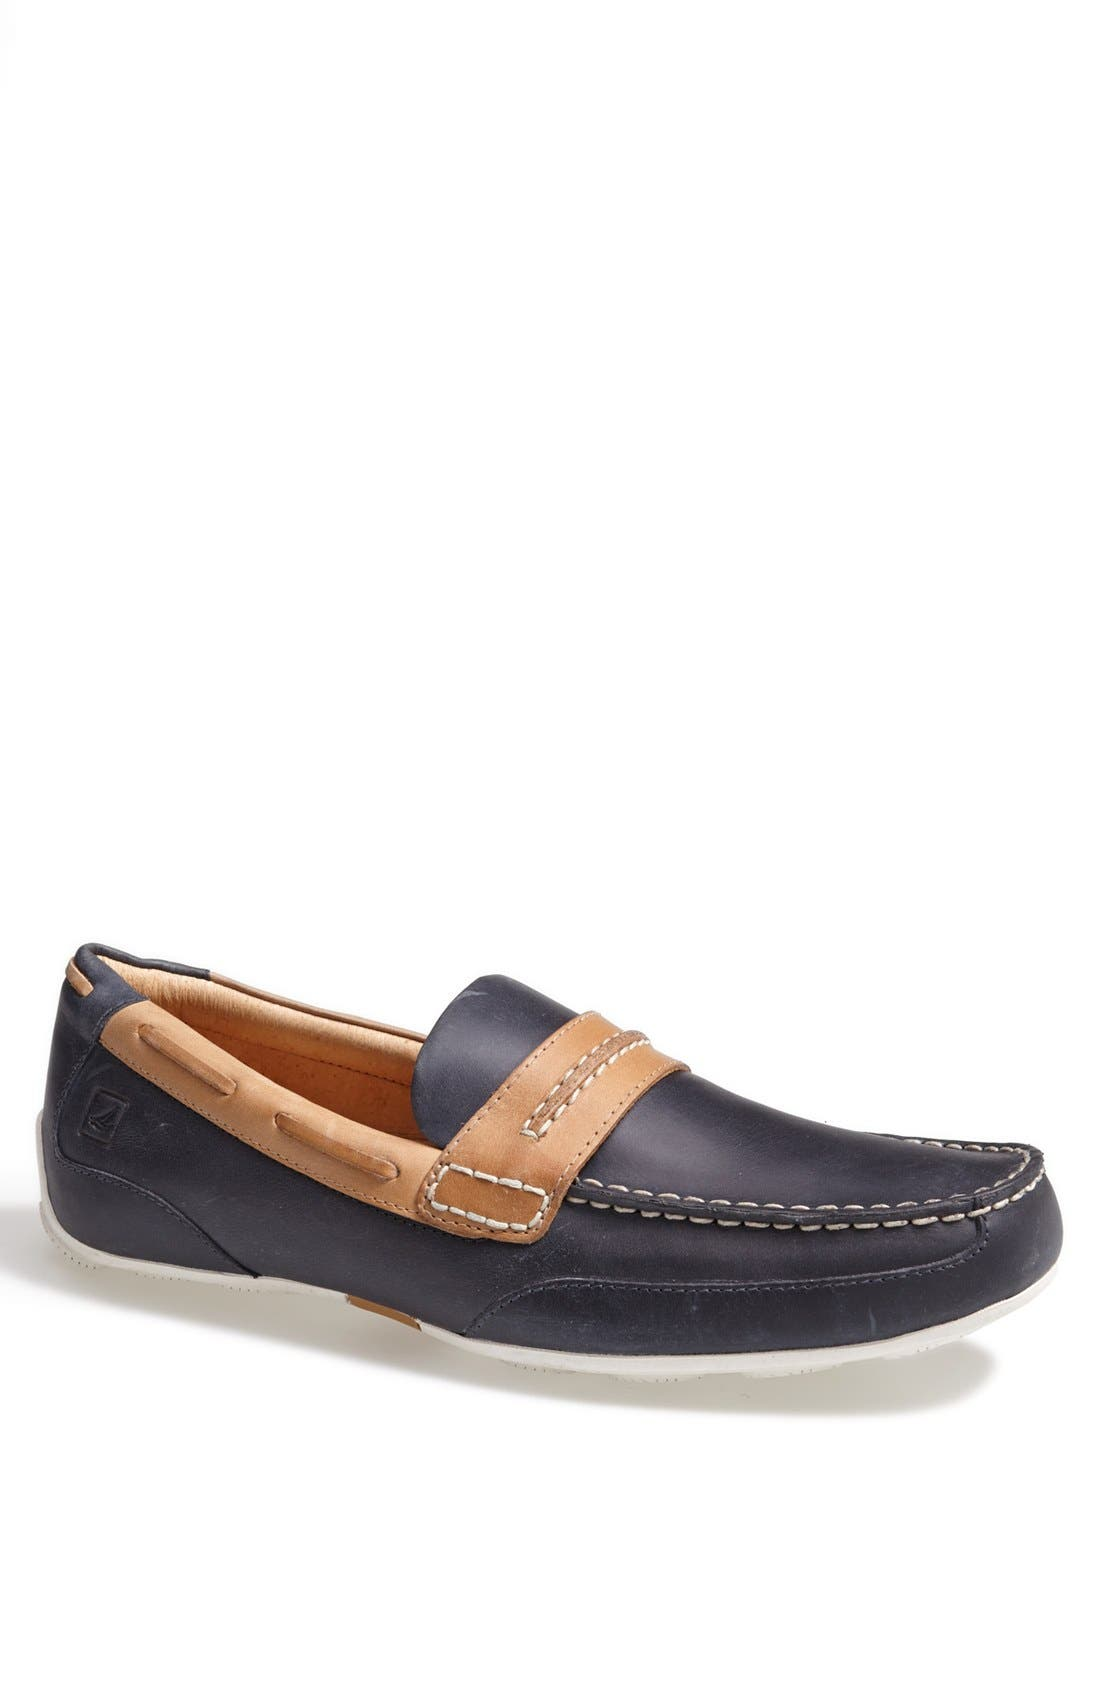 Alternate Image 1 Selected - Sperry Top-Sider® 'Navigator Suede' Driving Shoe